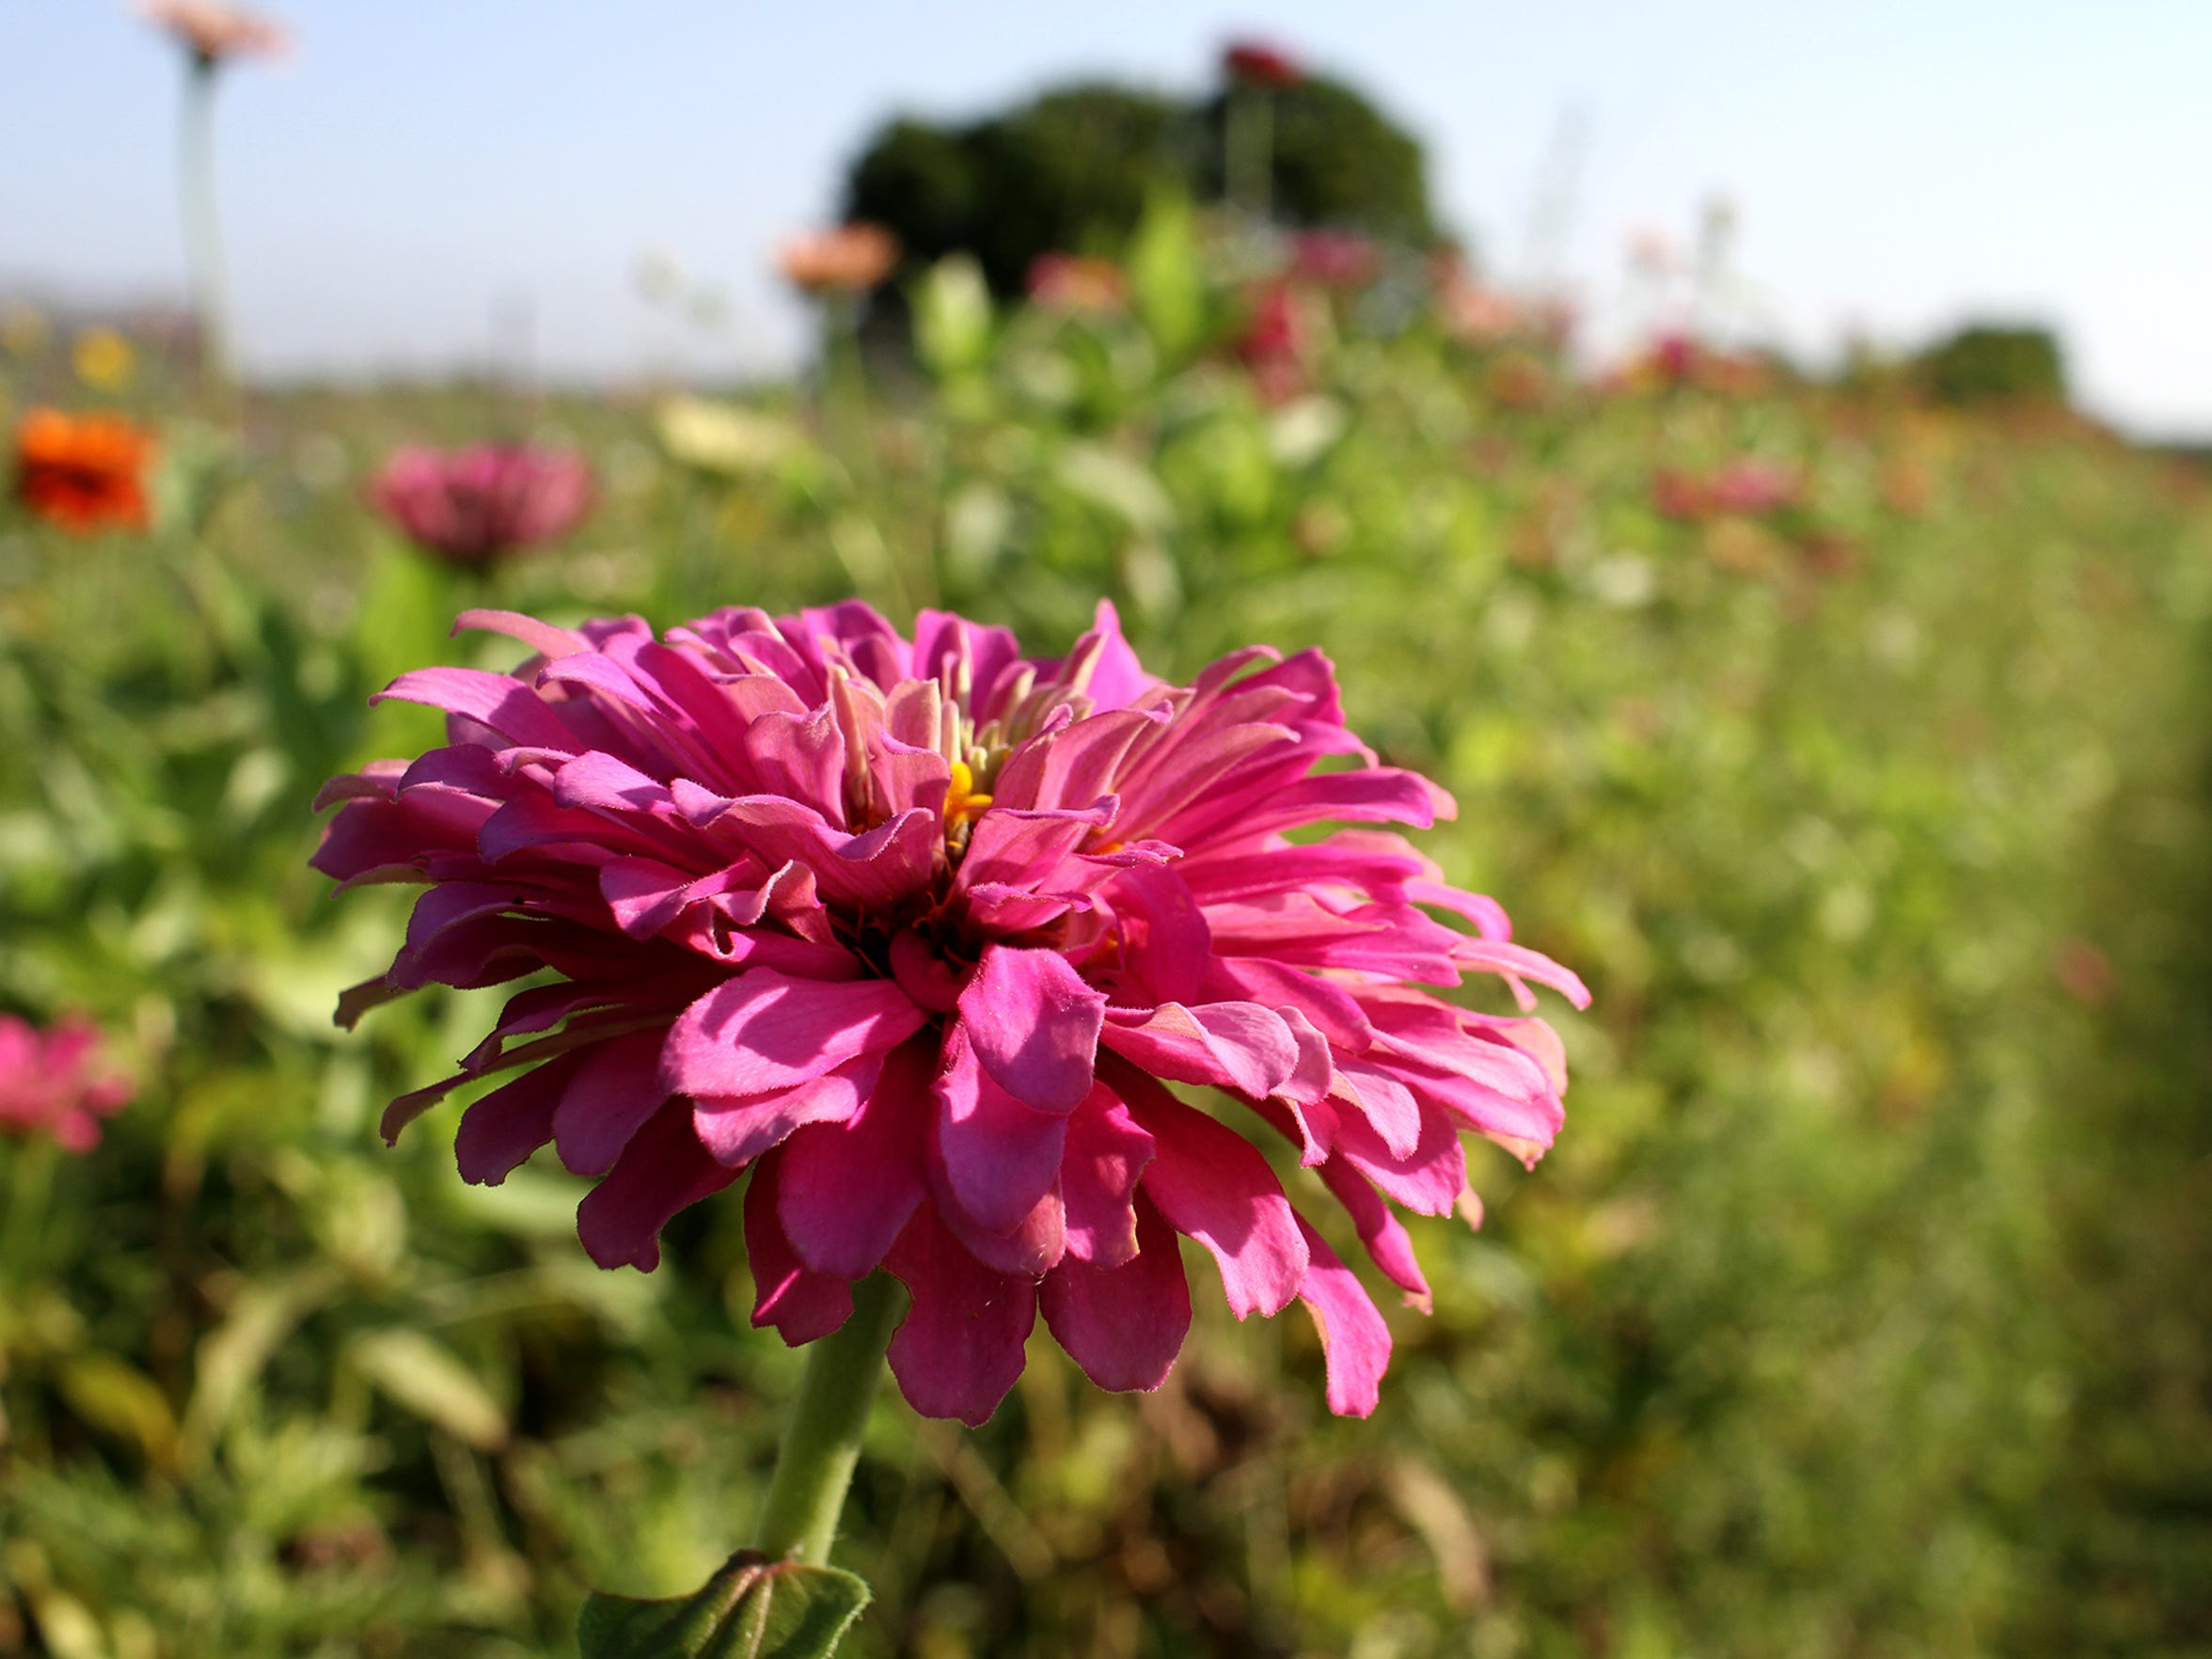 Flowers bloom at Gilbert Creek Gardens in Burkburnett. Owner Blair Ramon said the sustainable flower farm is part of the Slow Flower Movement, in which U.S. farmers are trying to reclaim the American flower market, now dominated by imported blooms.